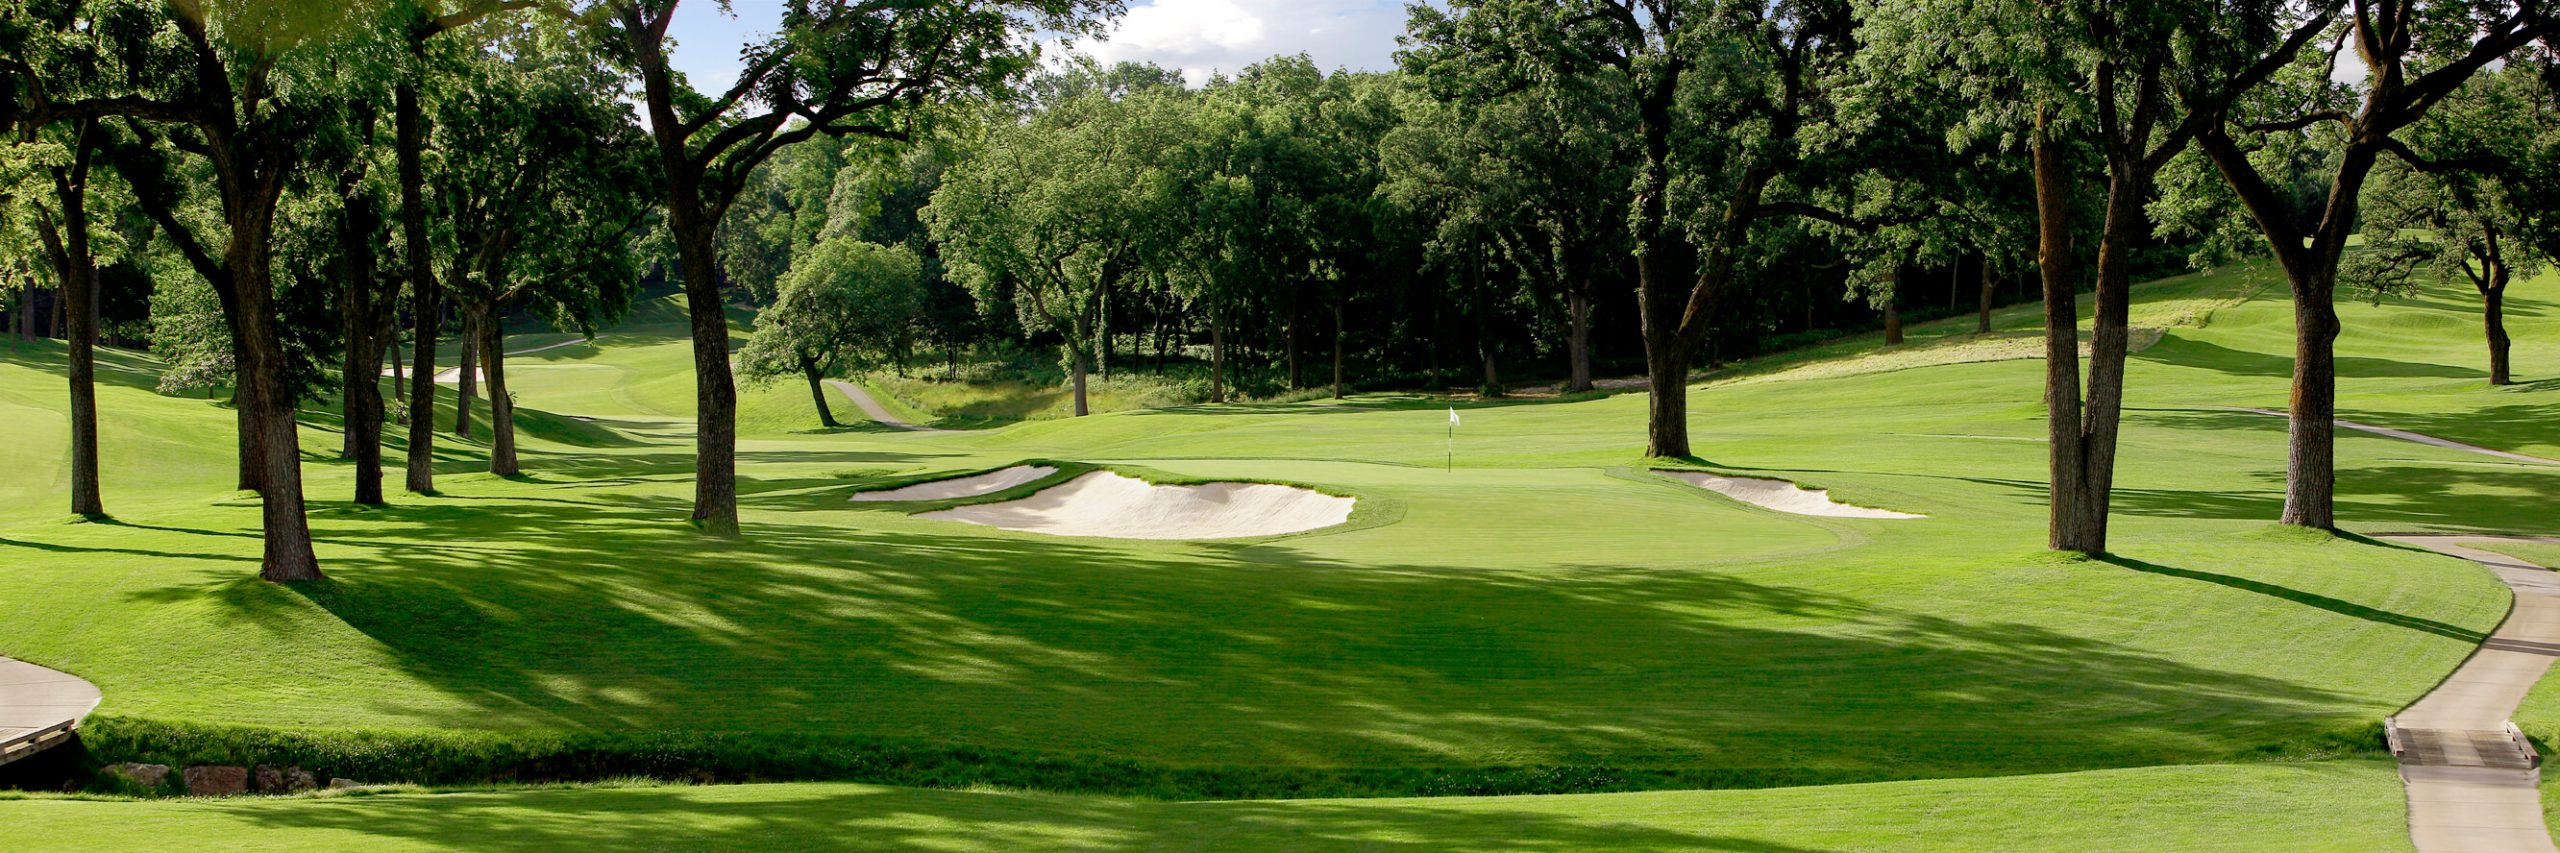 Golf Course Image - Omaha Country Club No. 7